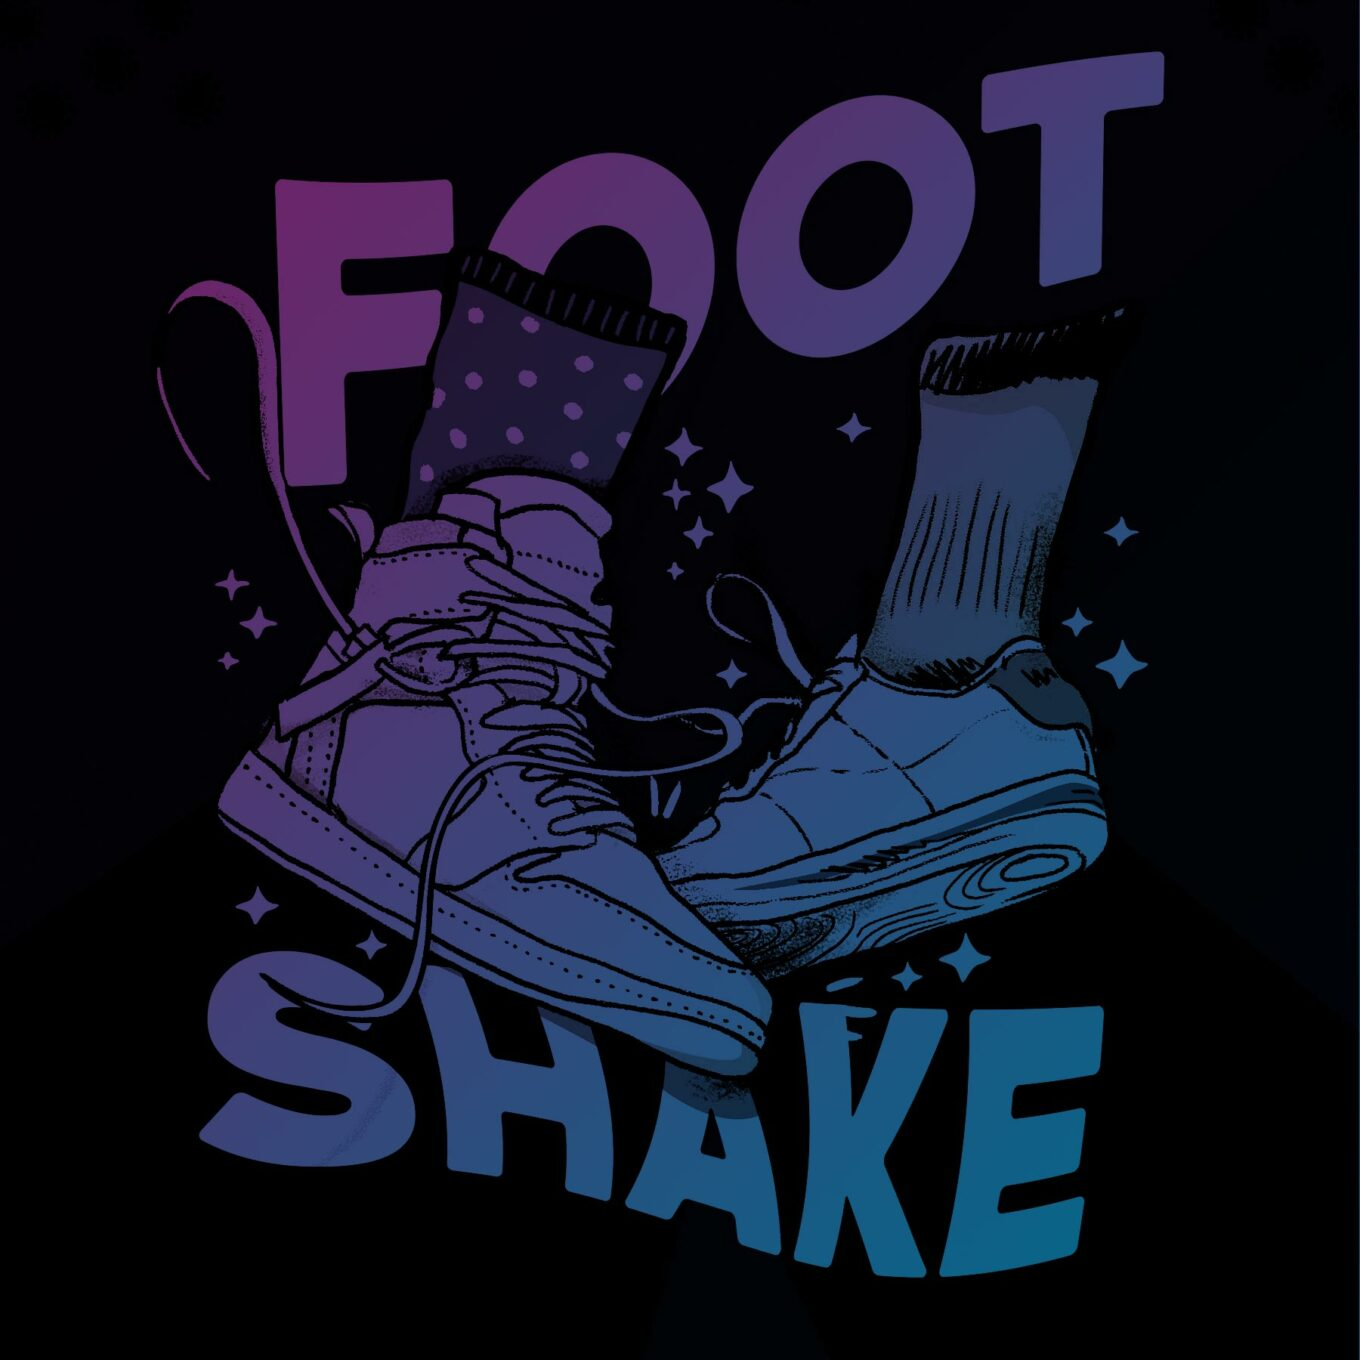 Foot Shake Illustration